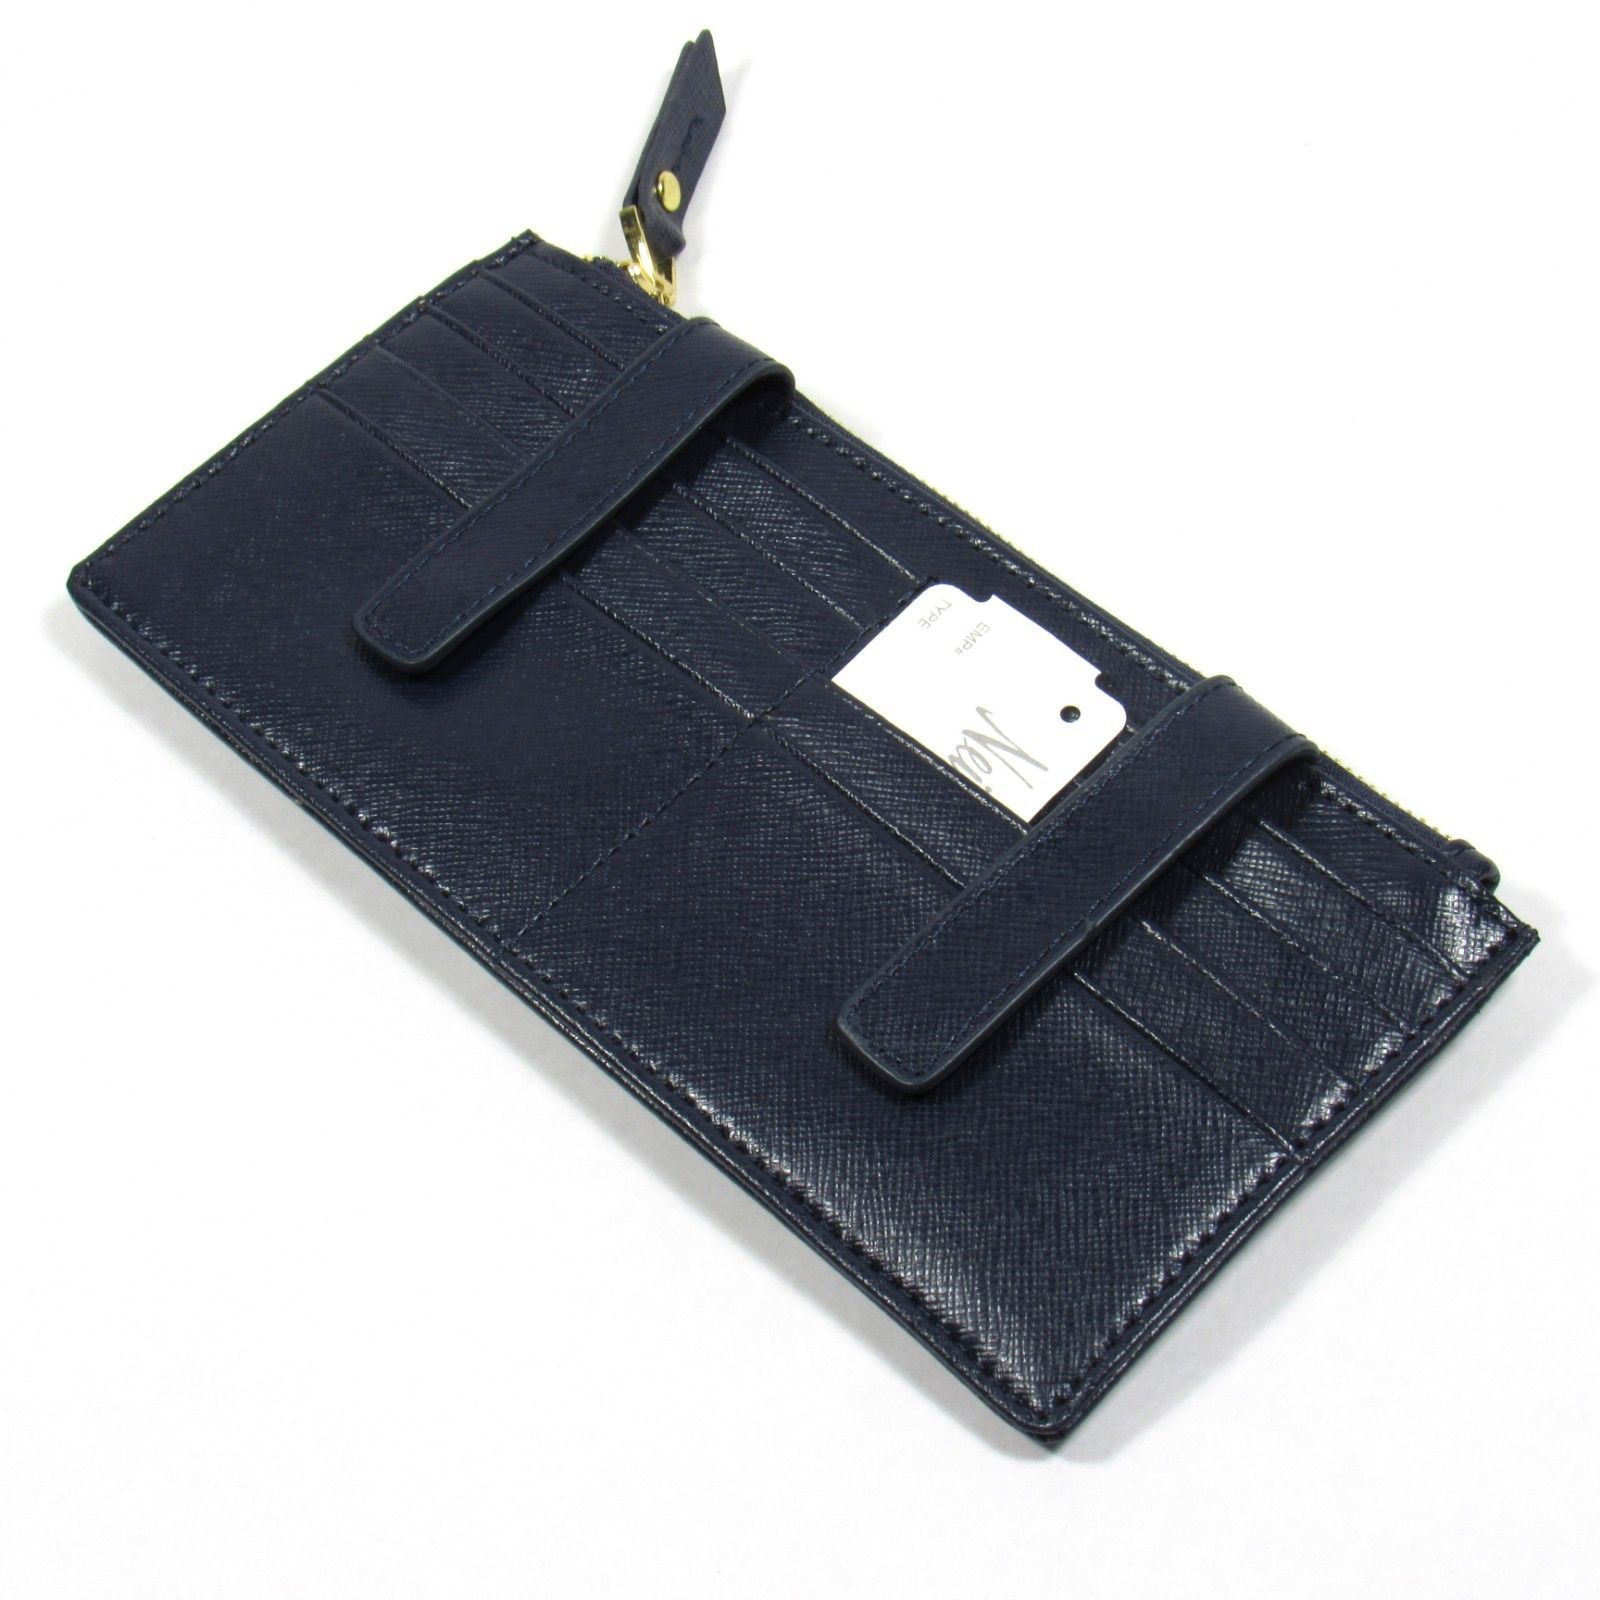 Neiman Marcus Women's ID Wallet Organizer Card Case.Saffiano Leather. Navy Blue